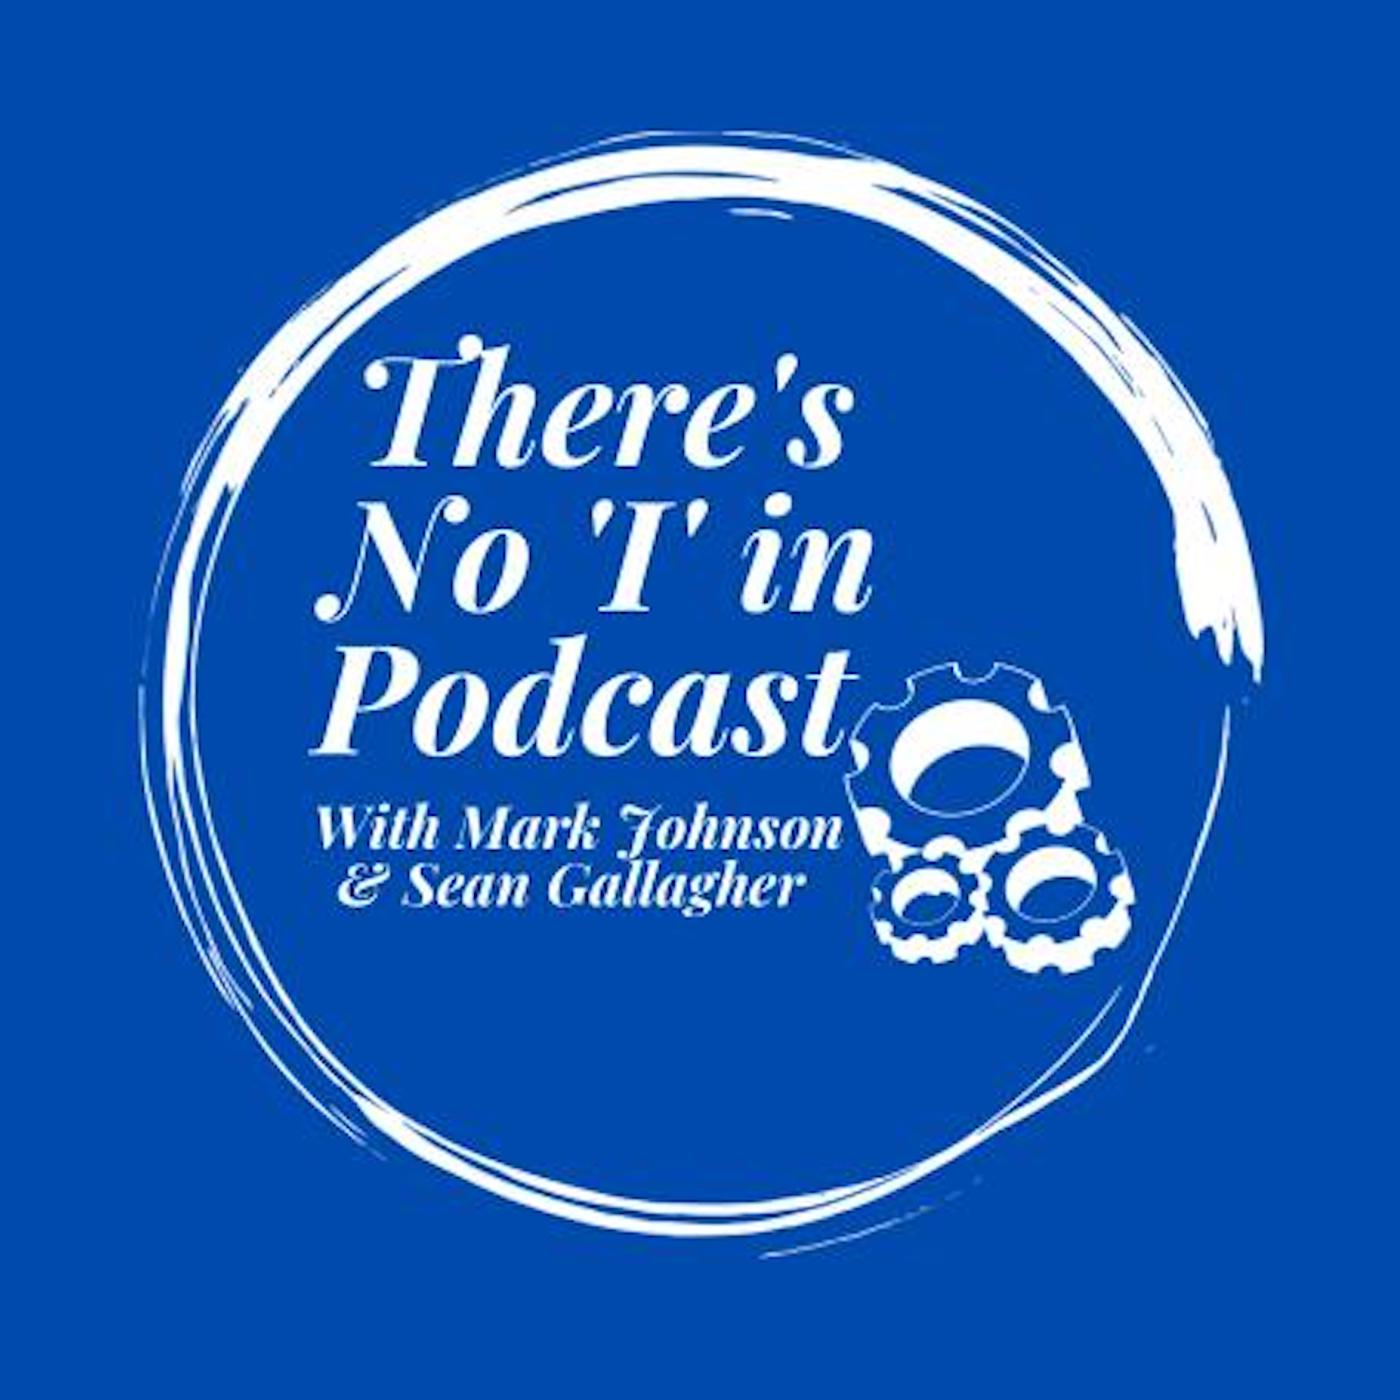 Artwork for podcast There's No 'I' in Podcast